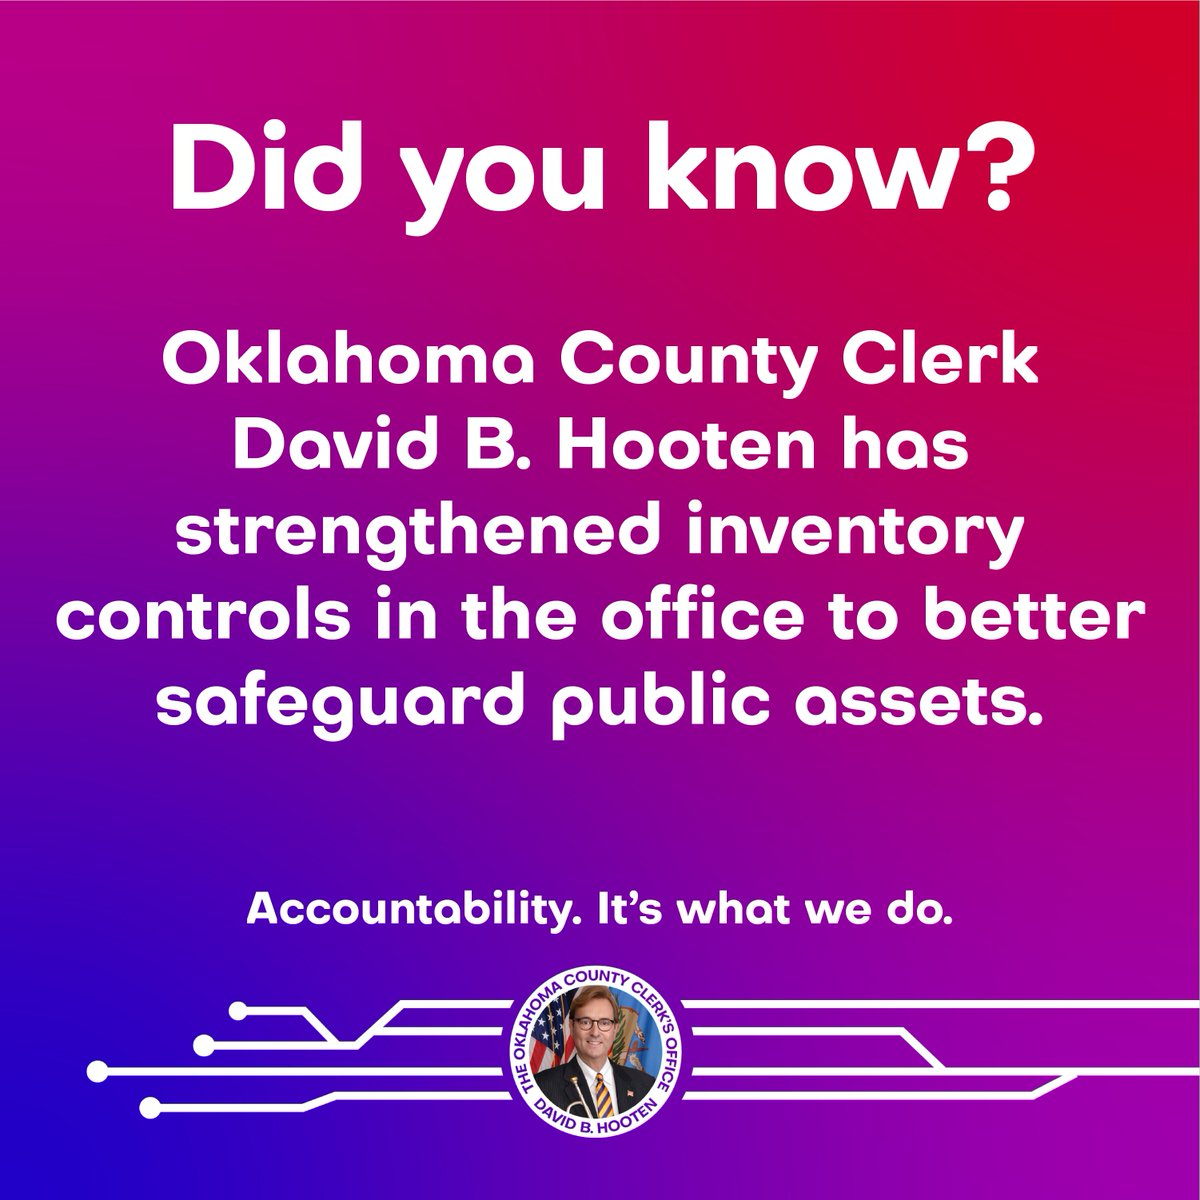 Keeping Oklahoma County safe and secure🔒 #OklahomaCounty #Oklahoma #OKC #Edmond #MidwestCity #Choctaw #DelCity #Luther #Arcadia #NicholsHills #Innovation #Business #PhotoOfTheDay #Photo #PicOfTheDay #Accountability #Transparency #Efficiency #LocalGovernment #CountyGovernment